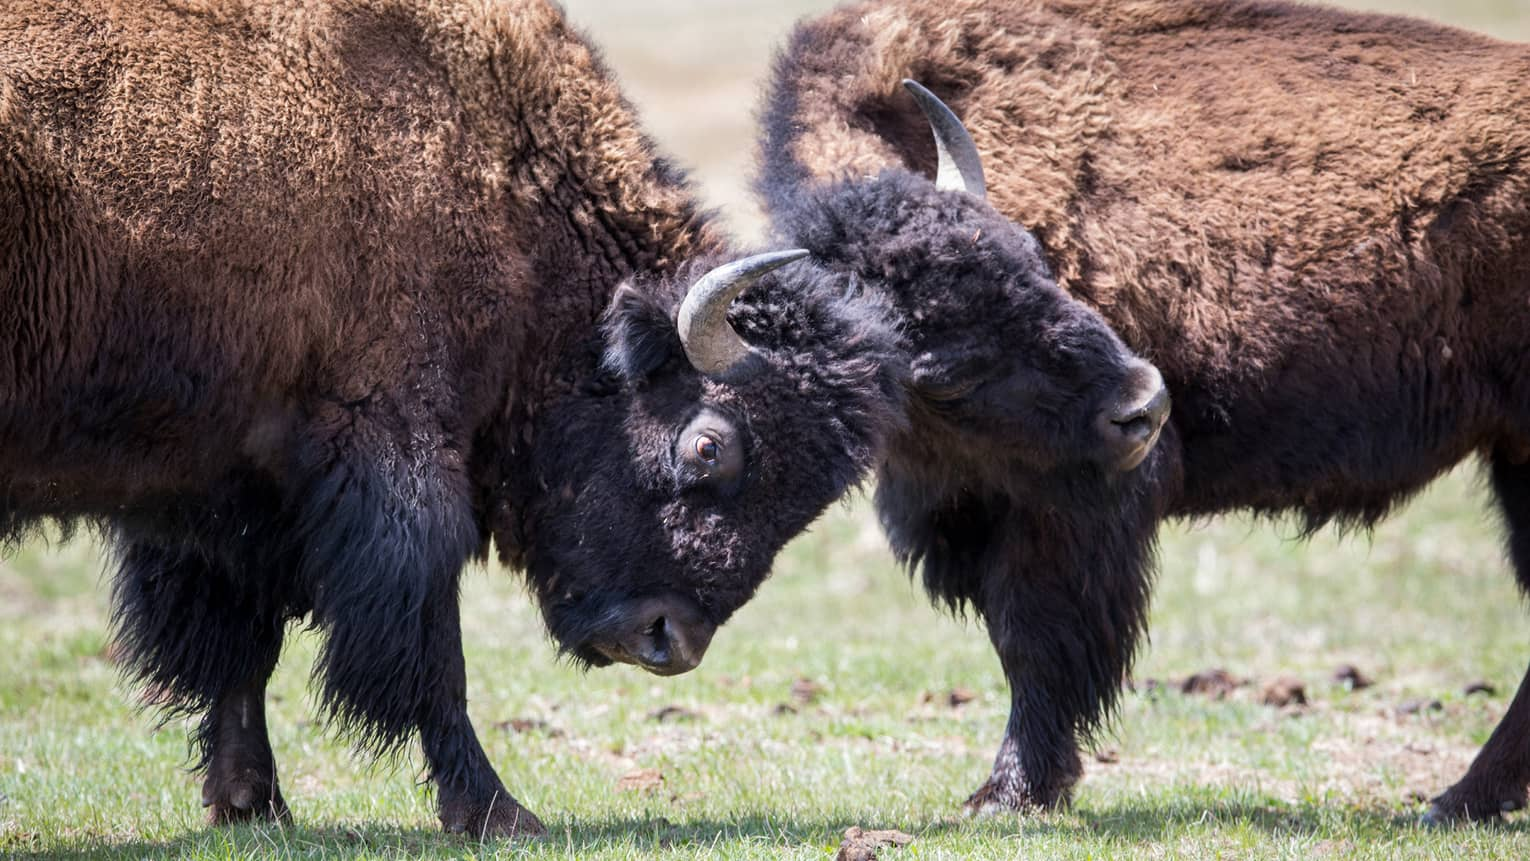 Close-up of two bison locking horns on green pasture